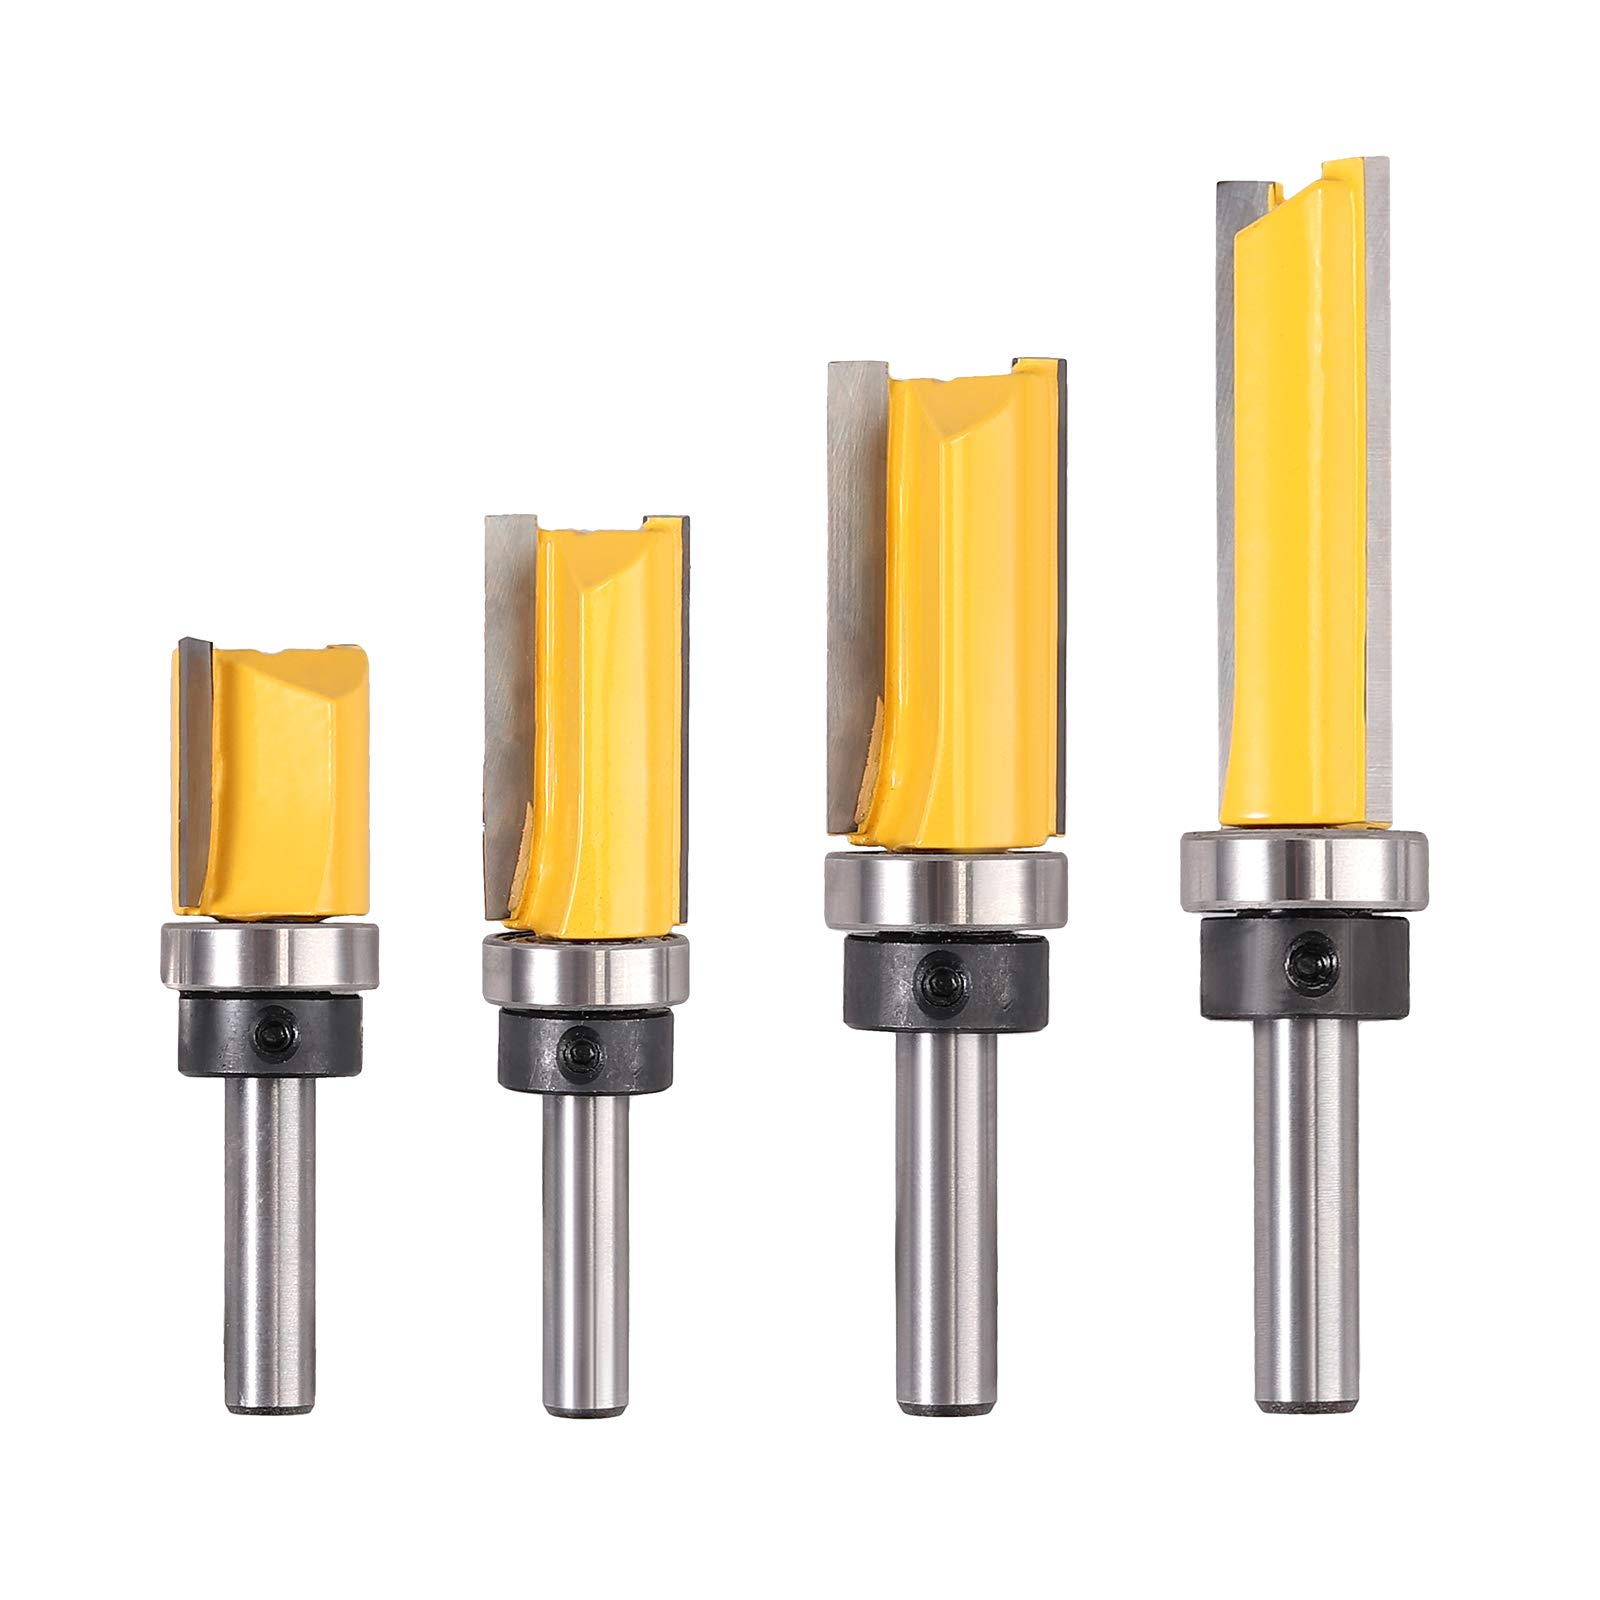 "Justech 4PCs 8mm Shank Dia 3/4"" Straight Router Bit Set Milling Cutter Trimming Cutter for Woodworking"